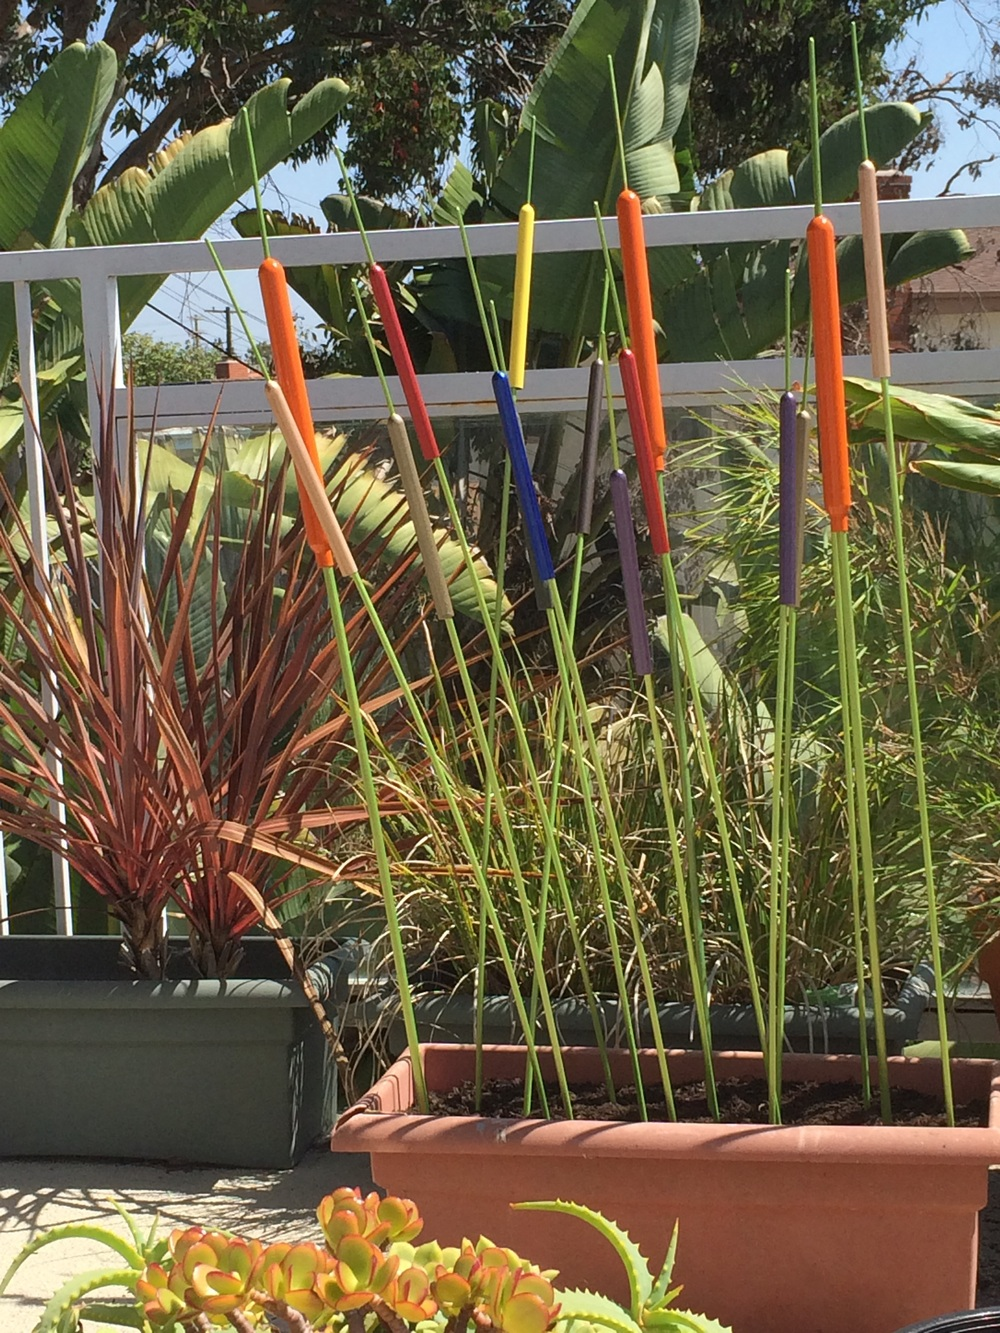 Cat tails with a twist. When the wind blows these make a soft, metallic sound, as with chimes.